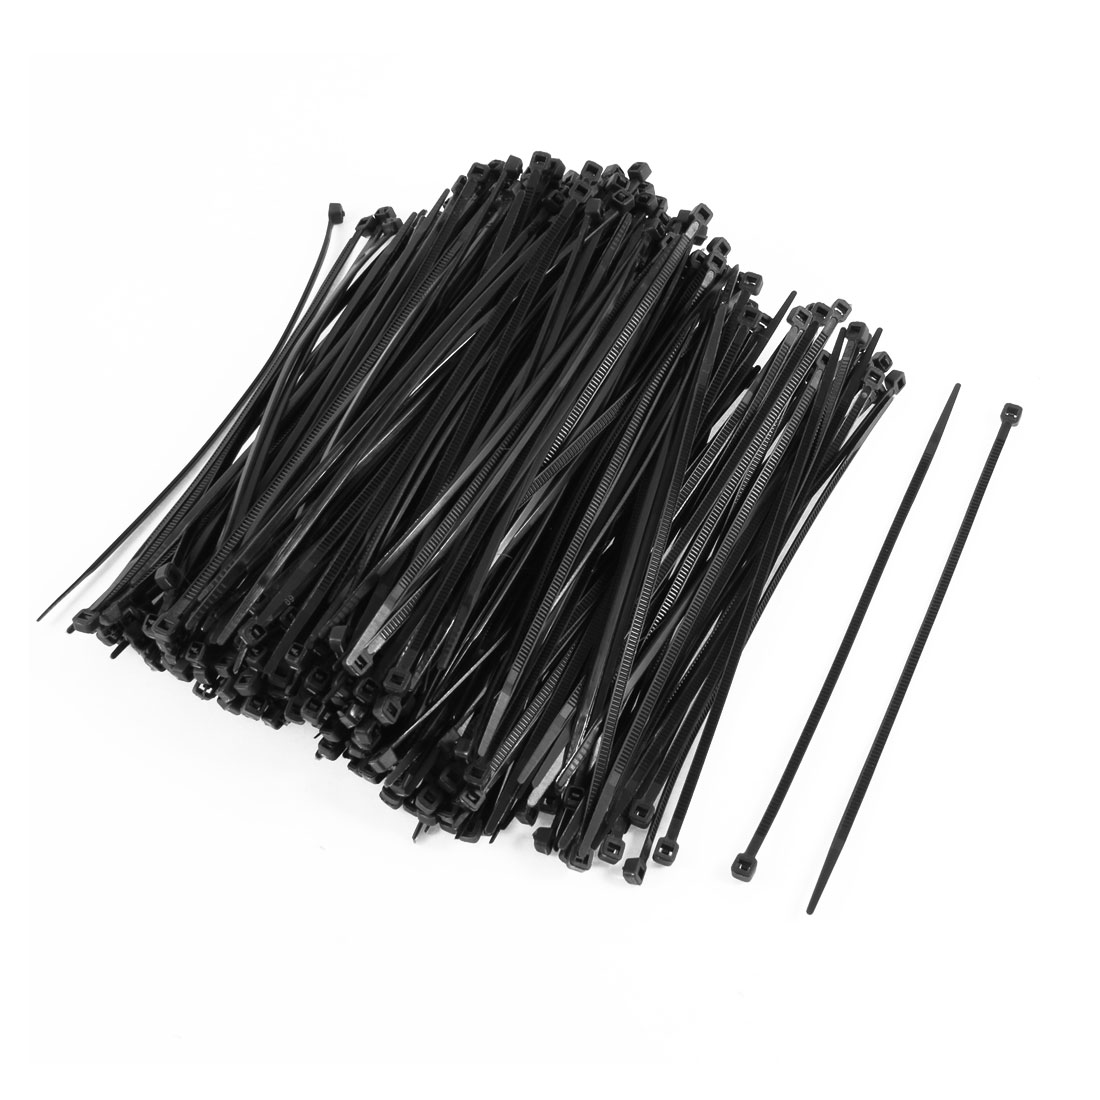 350PCS Plastic Self Locking Packaging Cable Zip Ties Fastener 4mmx150mm